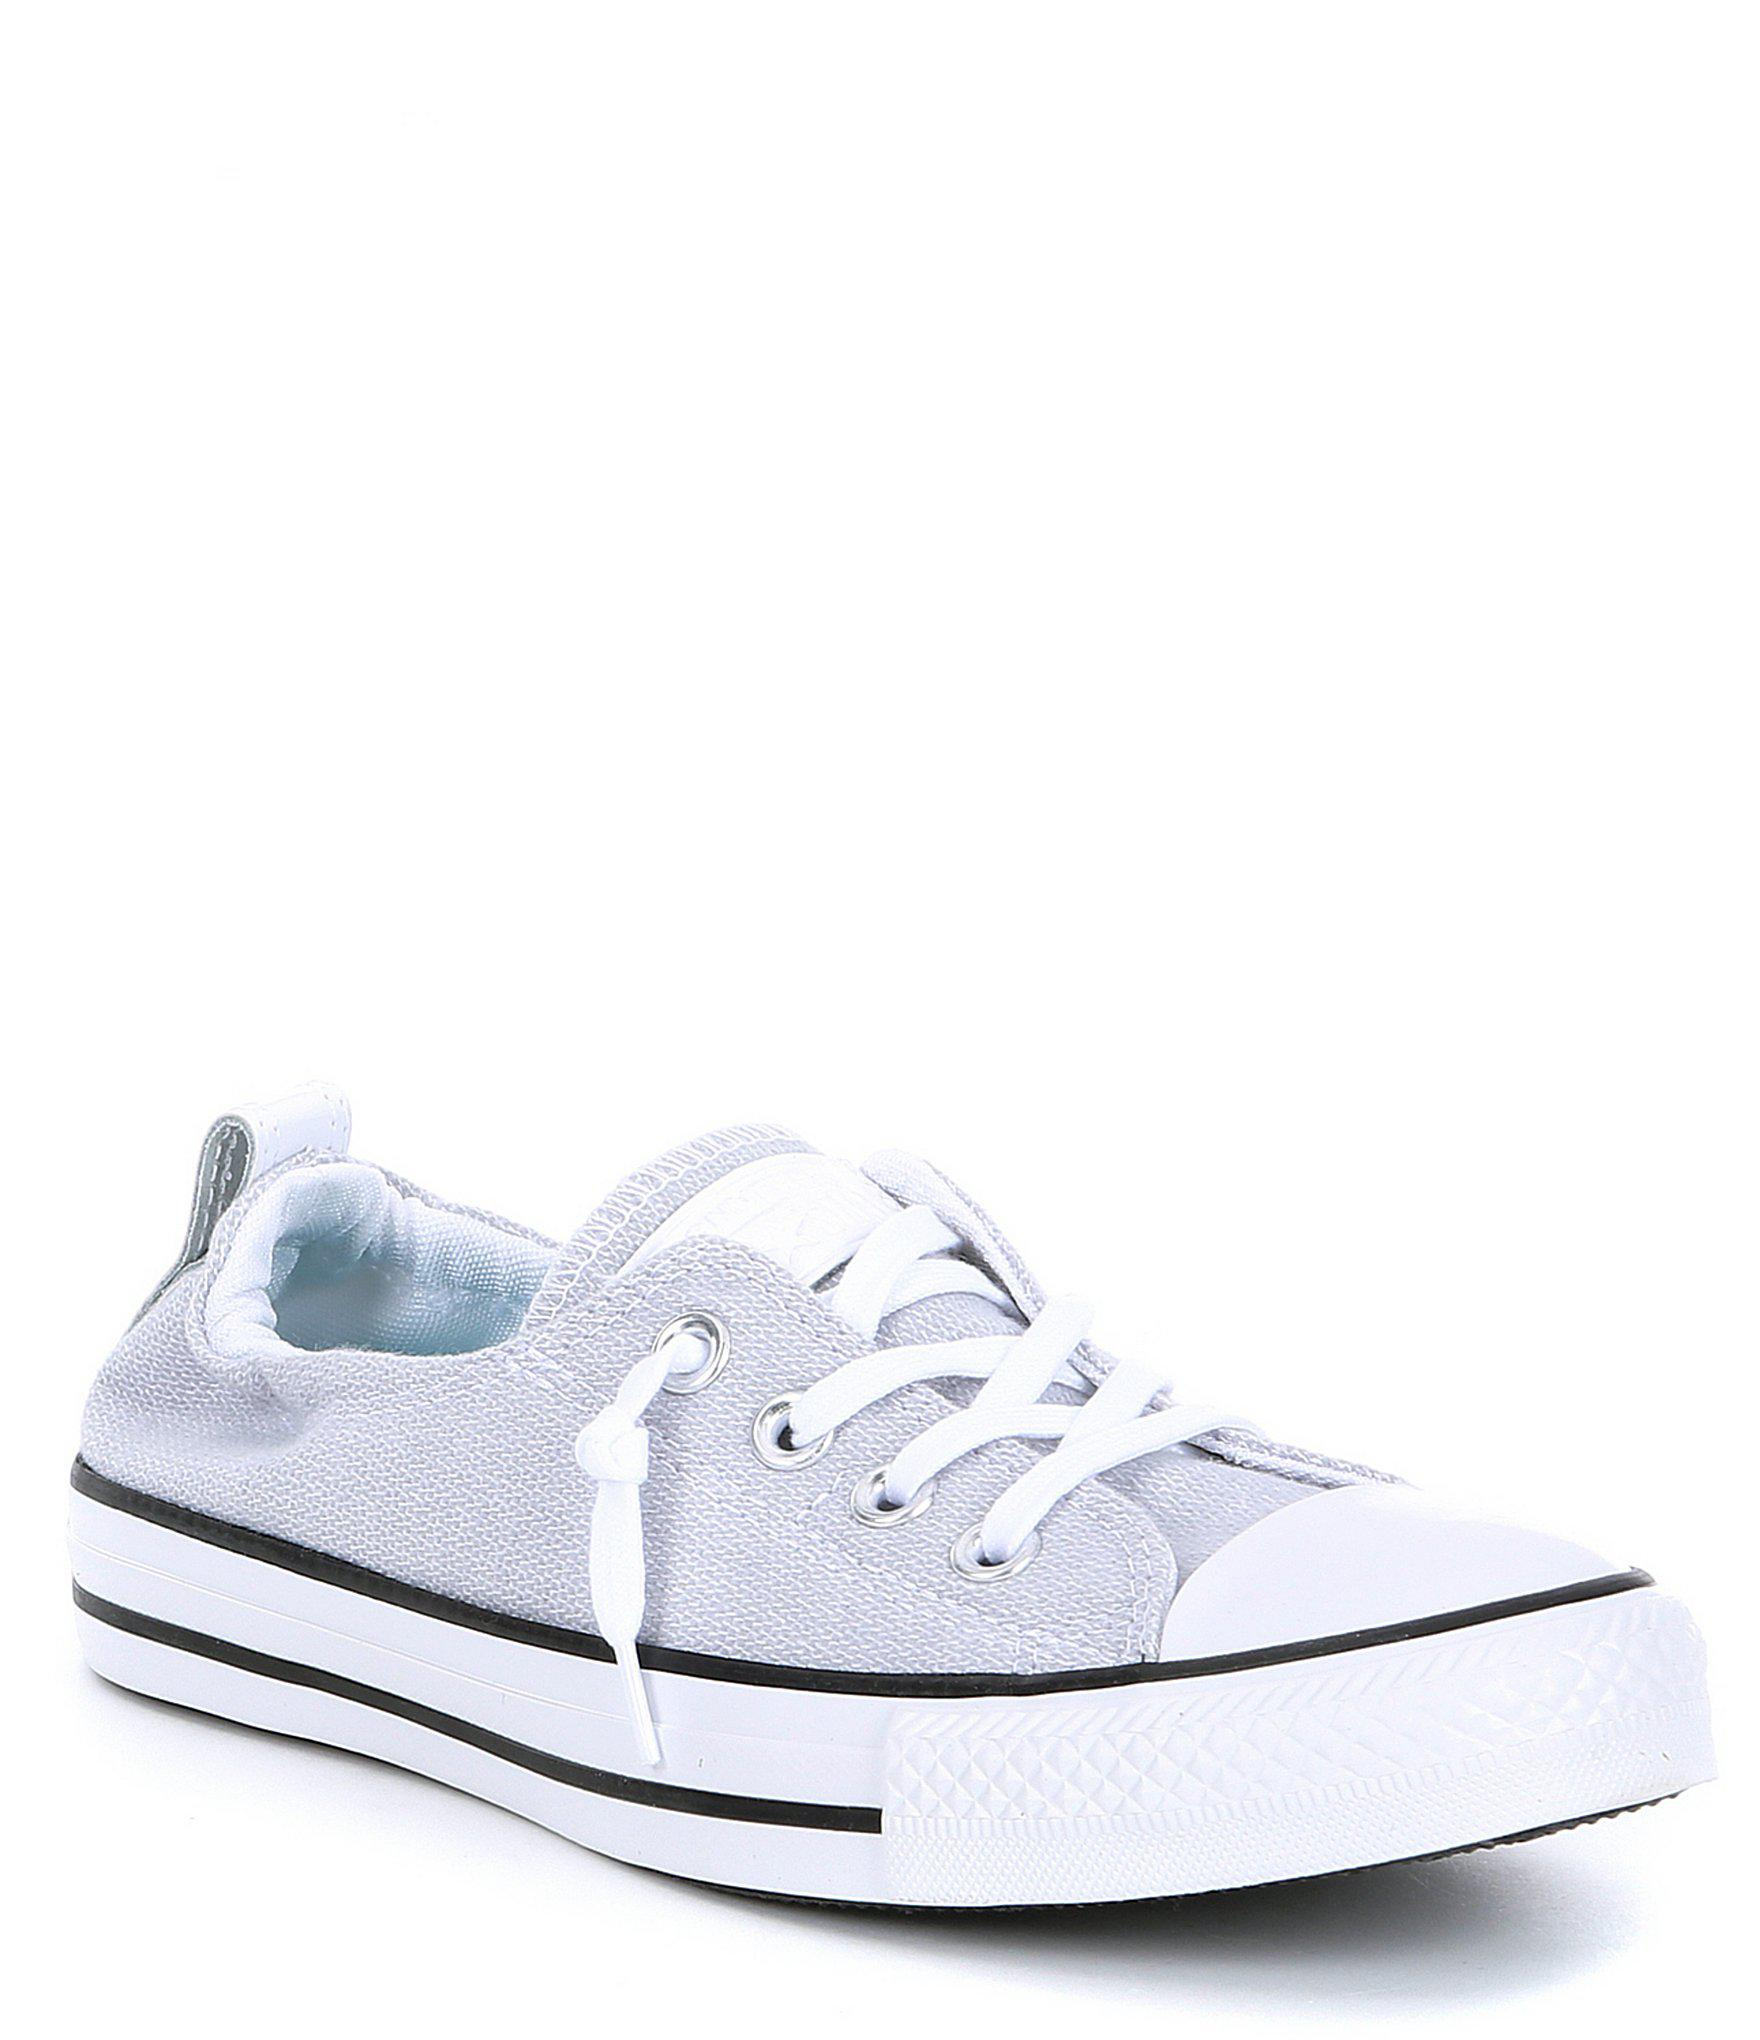 609bf911cac652 Converse. Women s White Chuck Taylor All Star Shoreline Slip On Sneakers